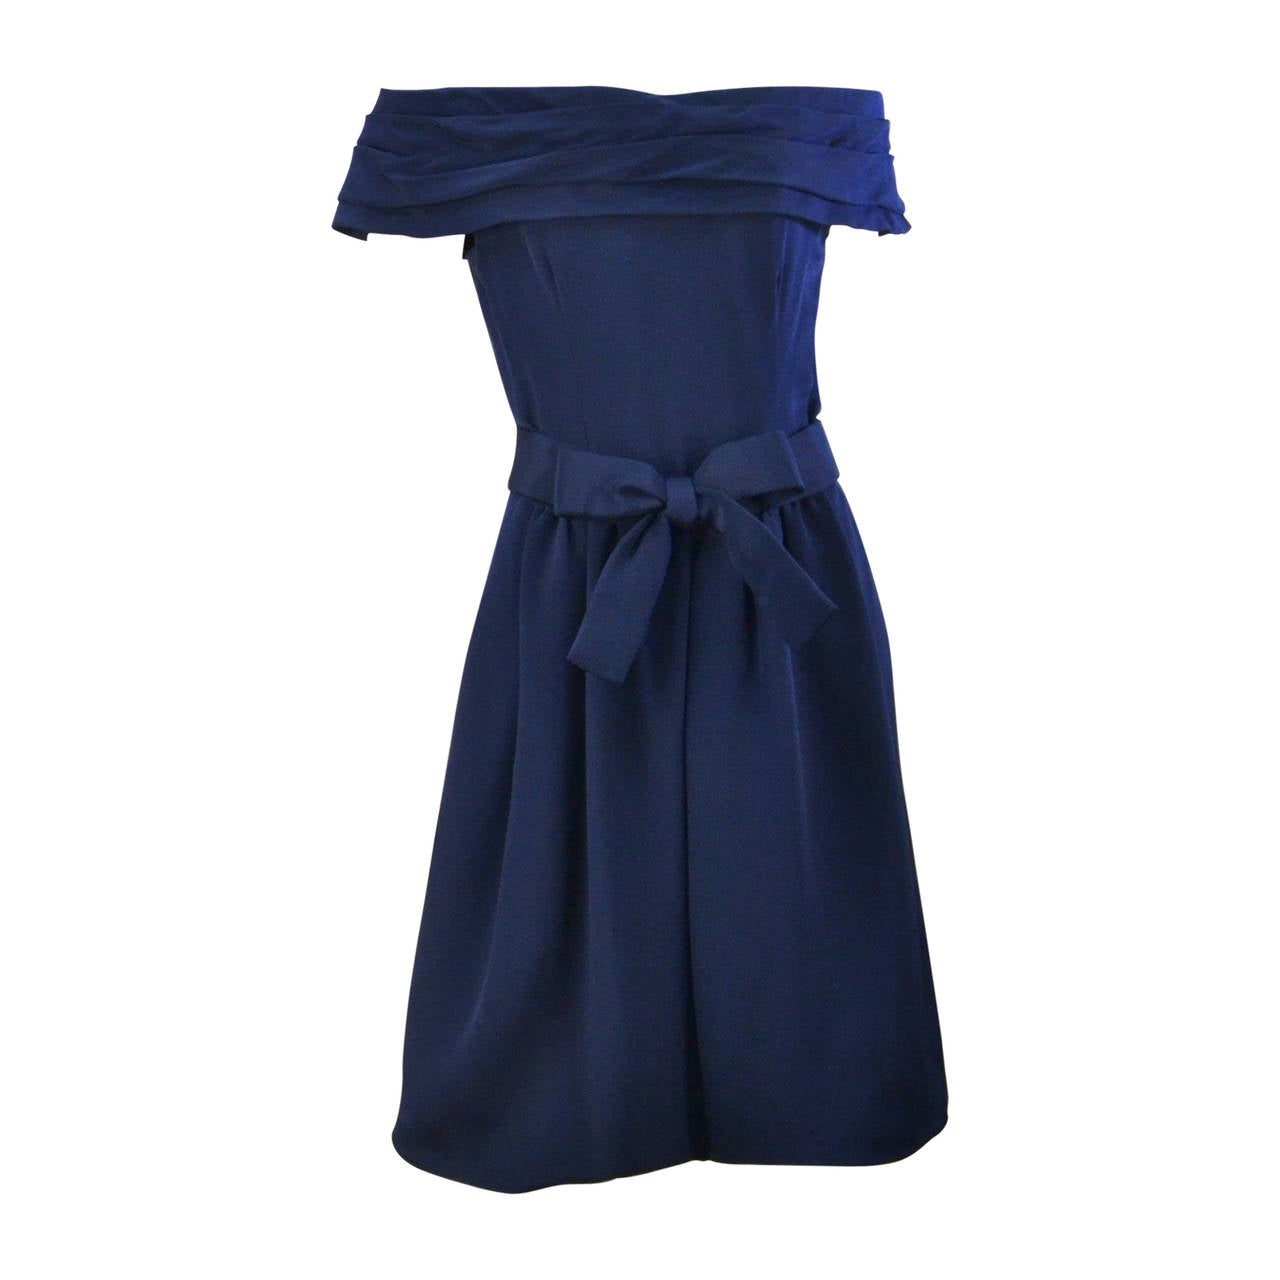 1960s Arnold Scaasi Navy Cocktail Dress